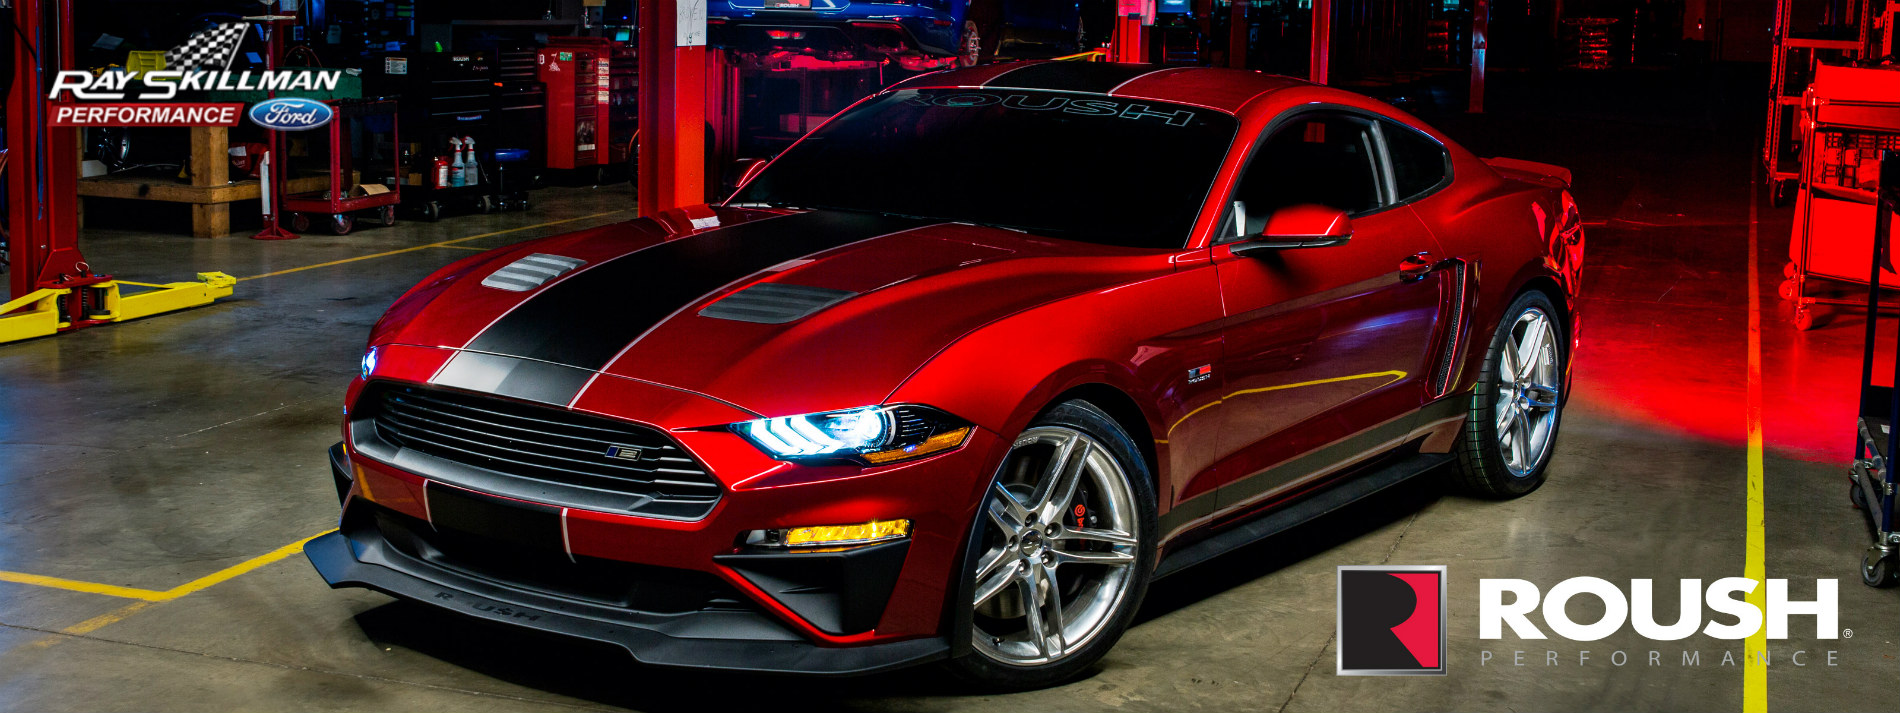 Roush Dealership In Indianapolis In Ray Skillman Ford